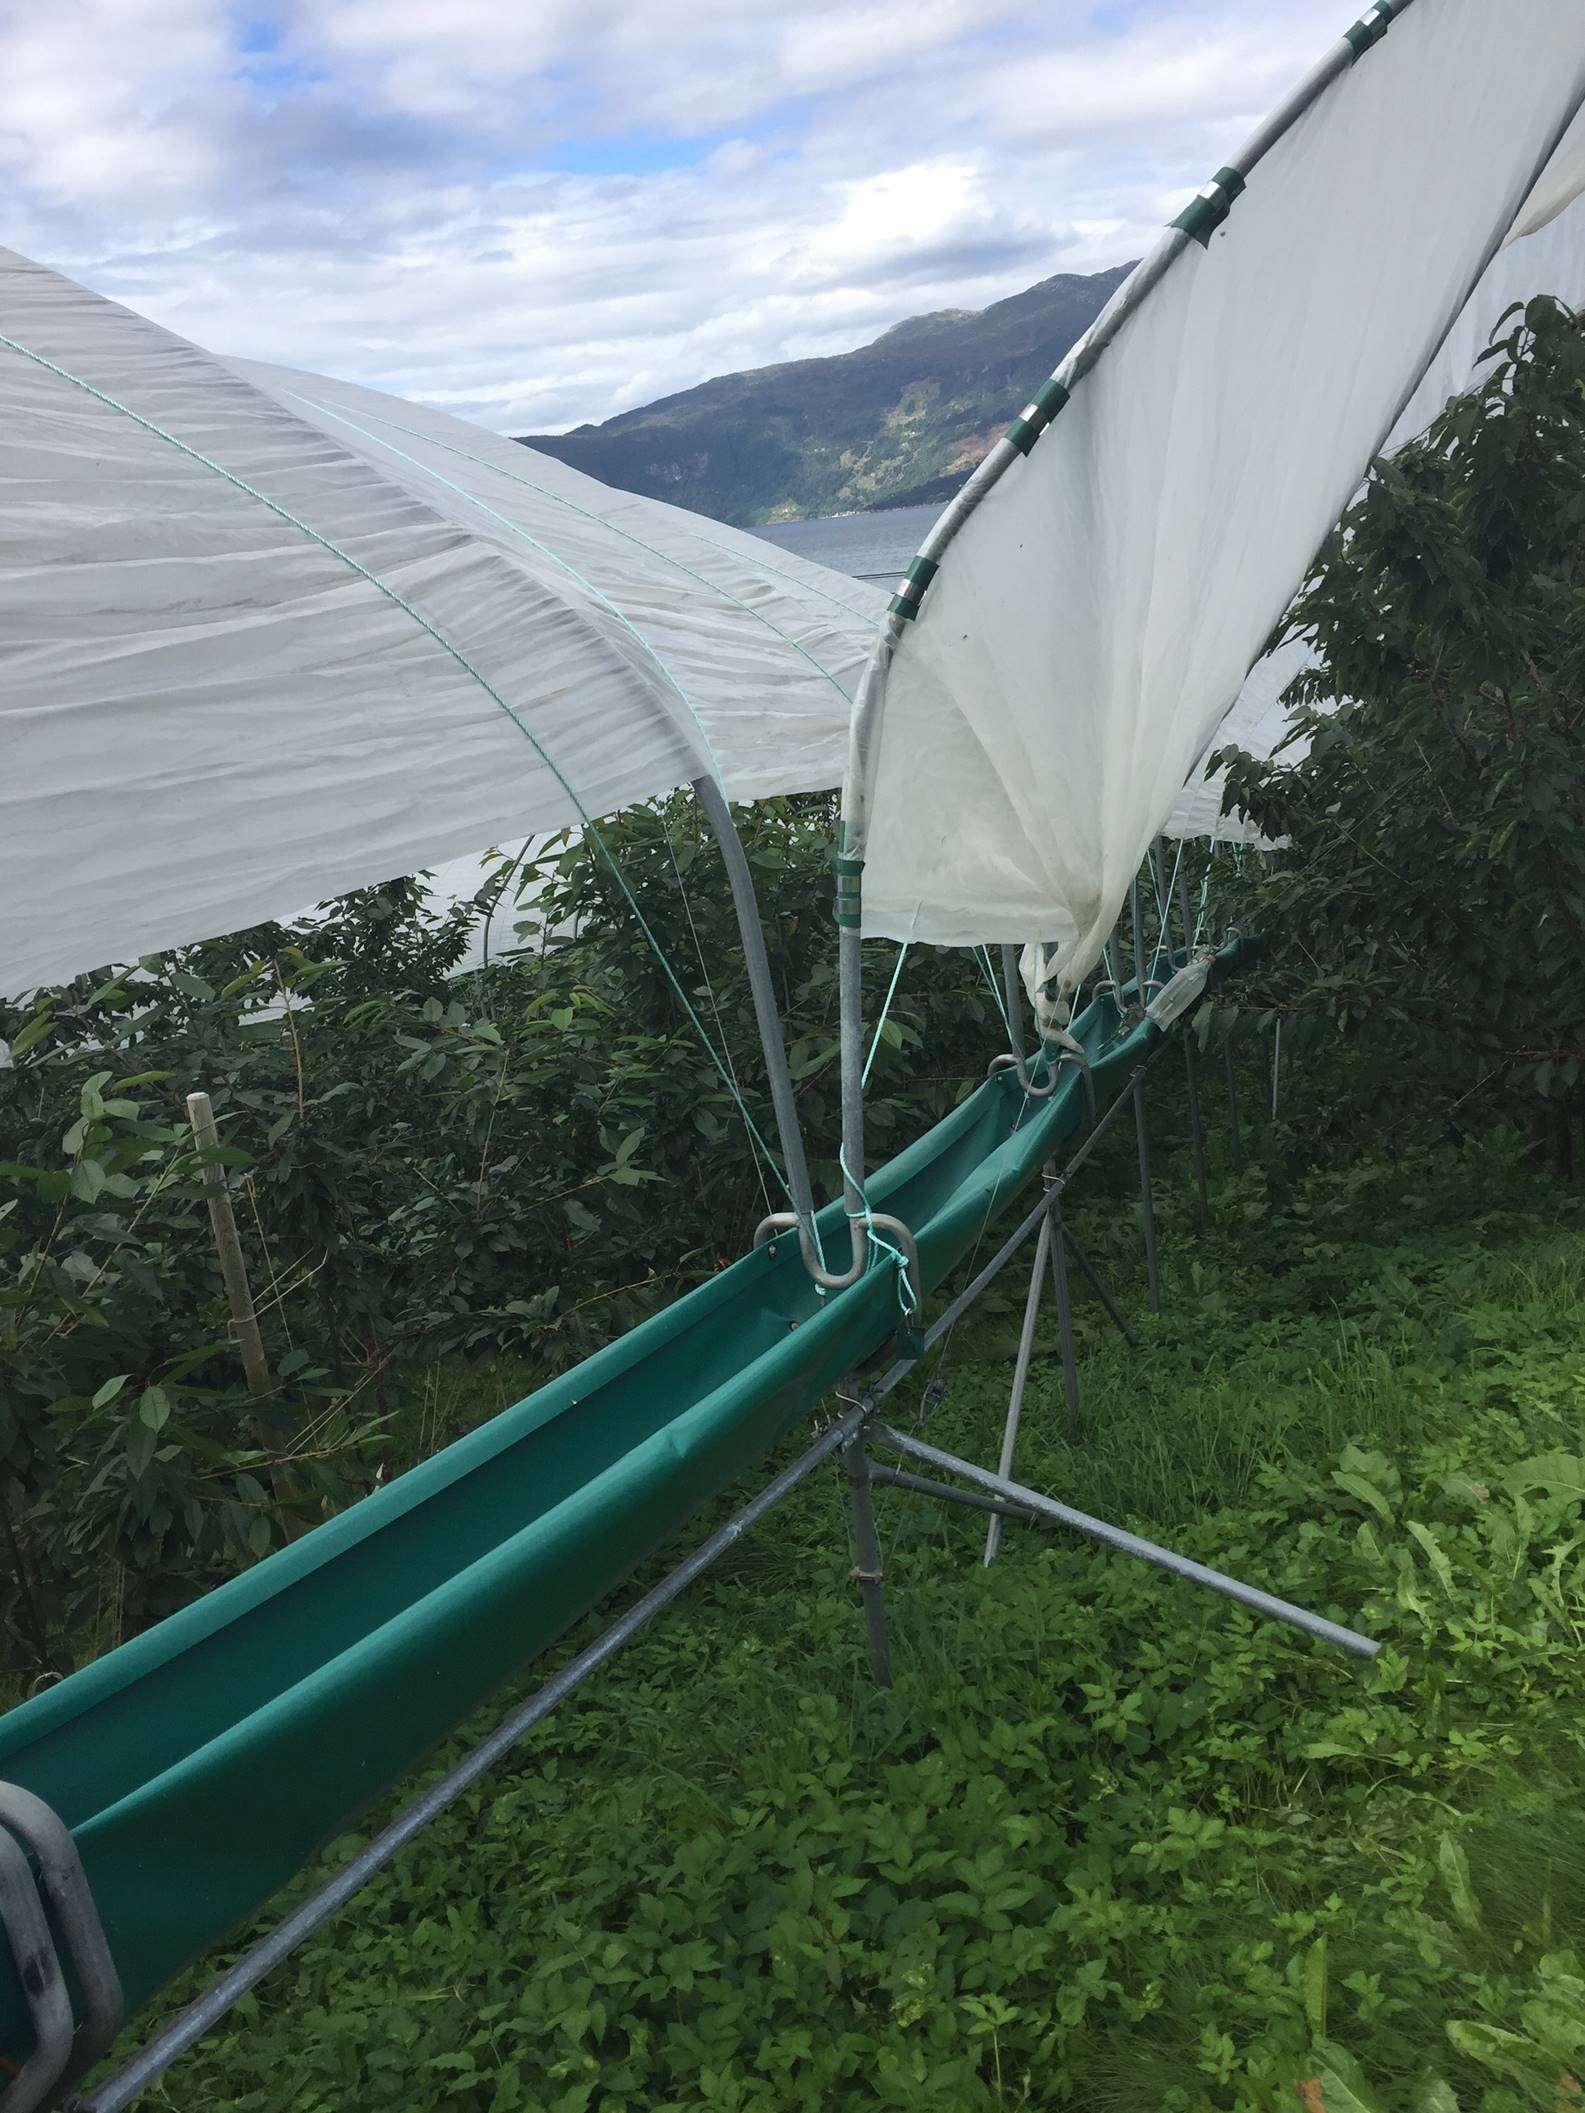 Gutters added to high tunnels remove rainwater from the orchard and prevent water from soaking into the ground beneath.